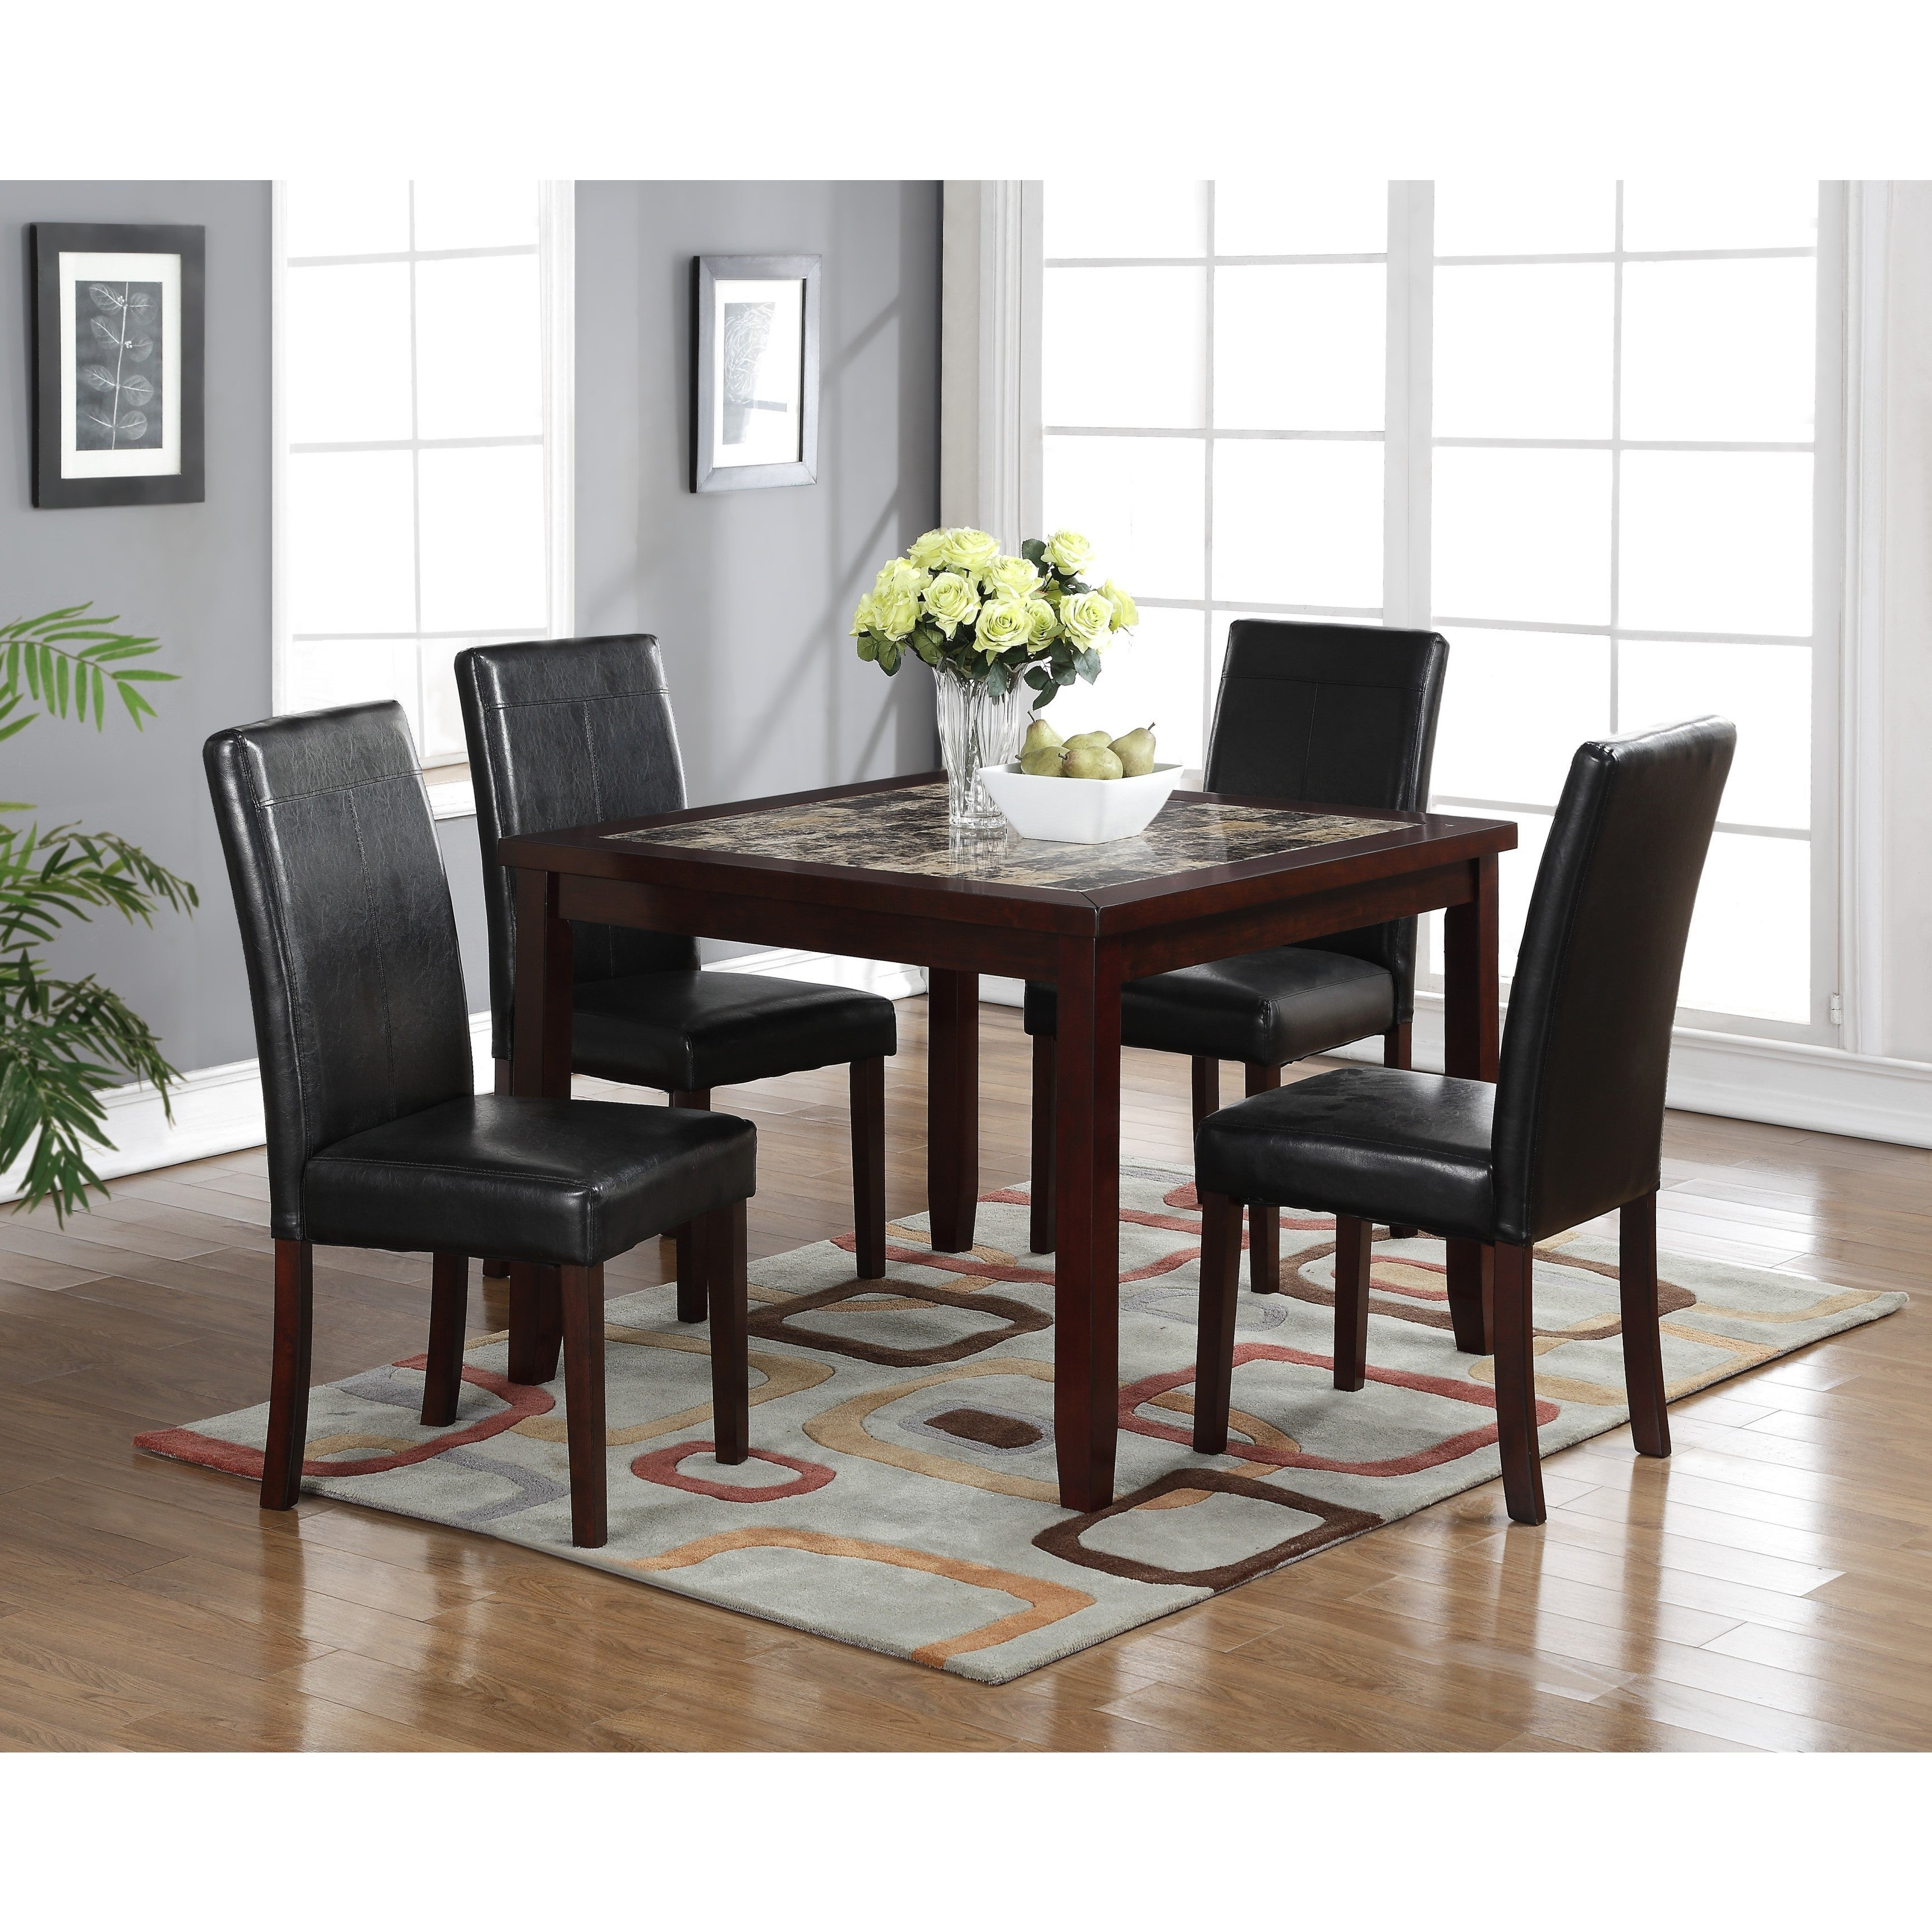 Most Up To Date Shop Lyke Home Aria 5 Piece Square Pub Dining Set – Free Shipping Inside Aria 5 Piece Dining Sets (View 3 of 20)